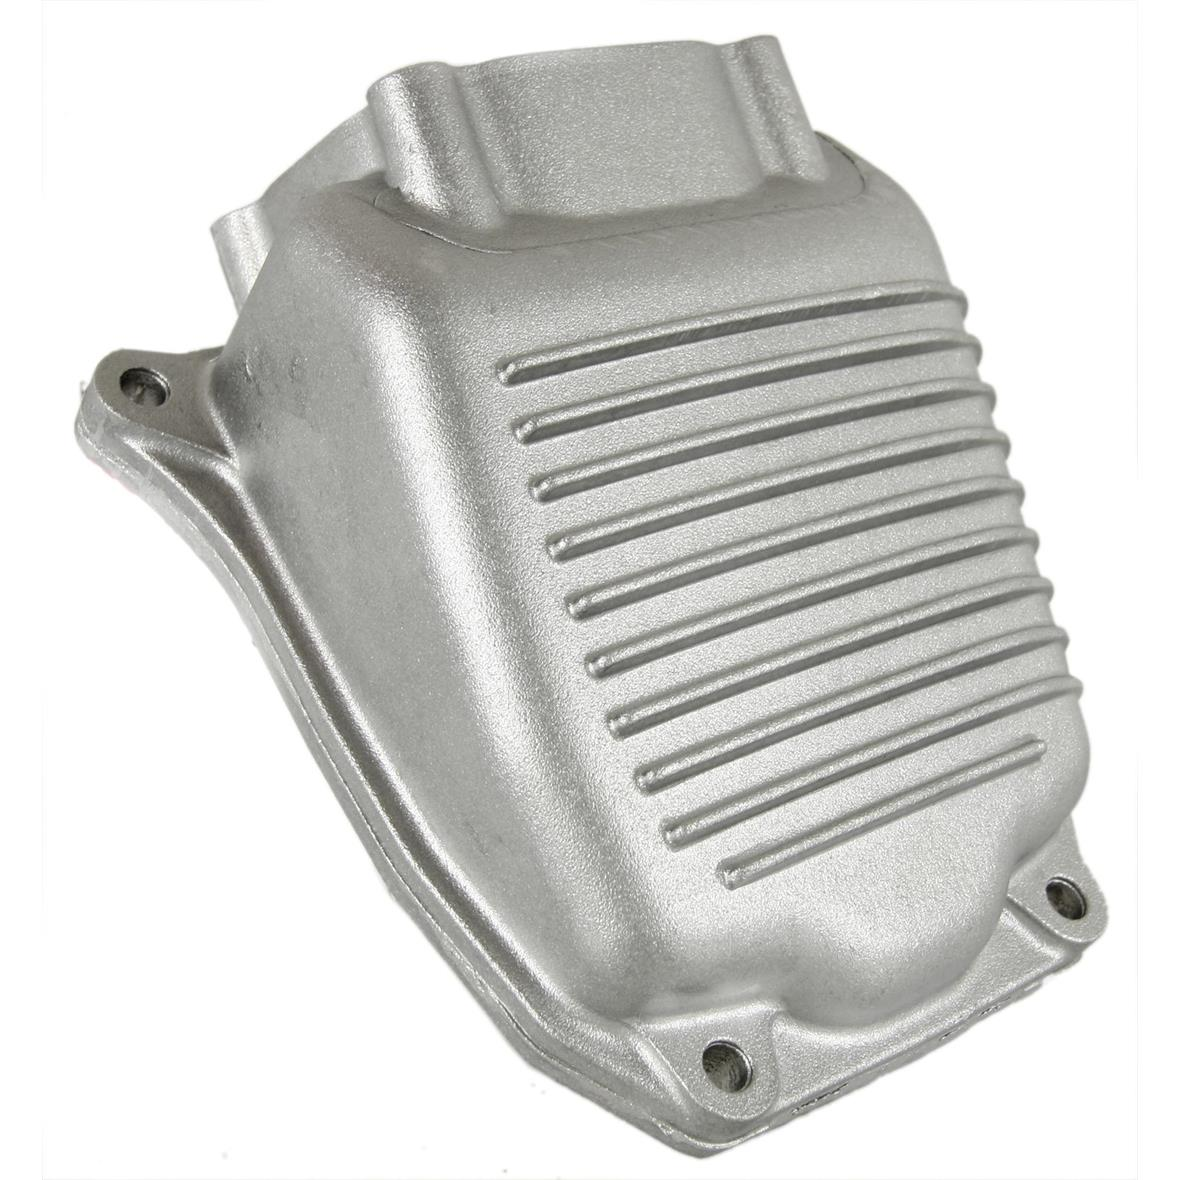 Product Image for 'Valve Cover PIAGGIOTitle'